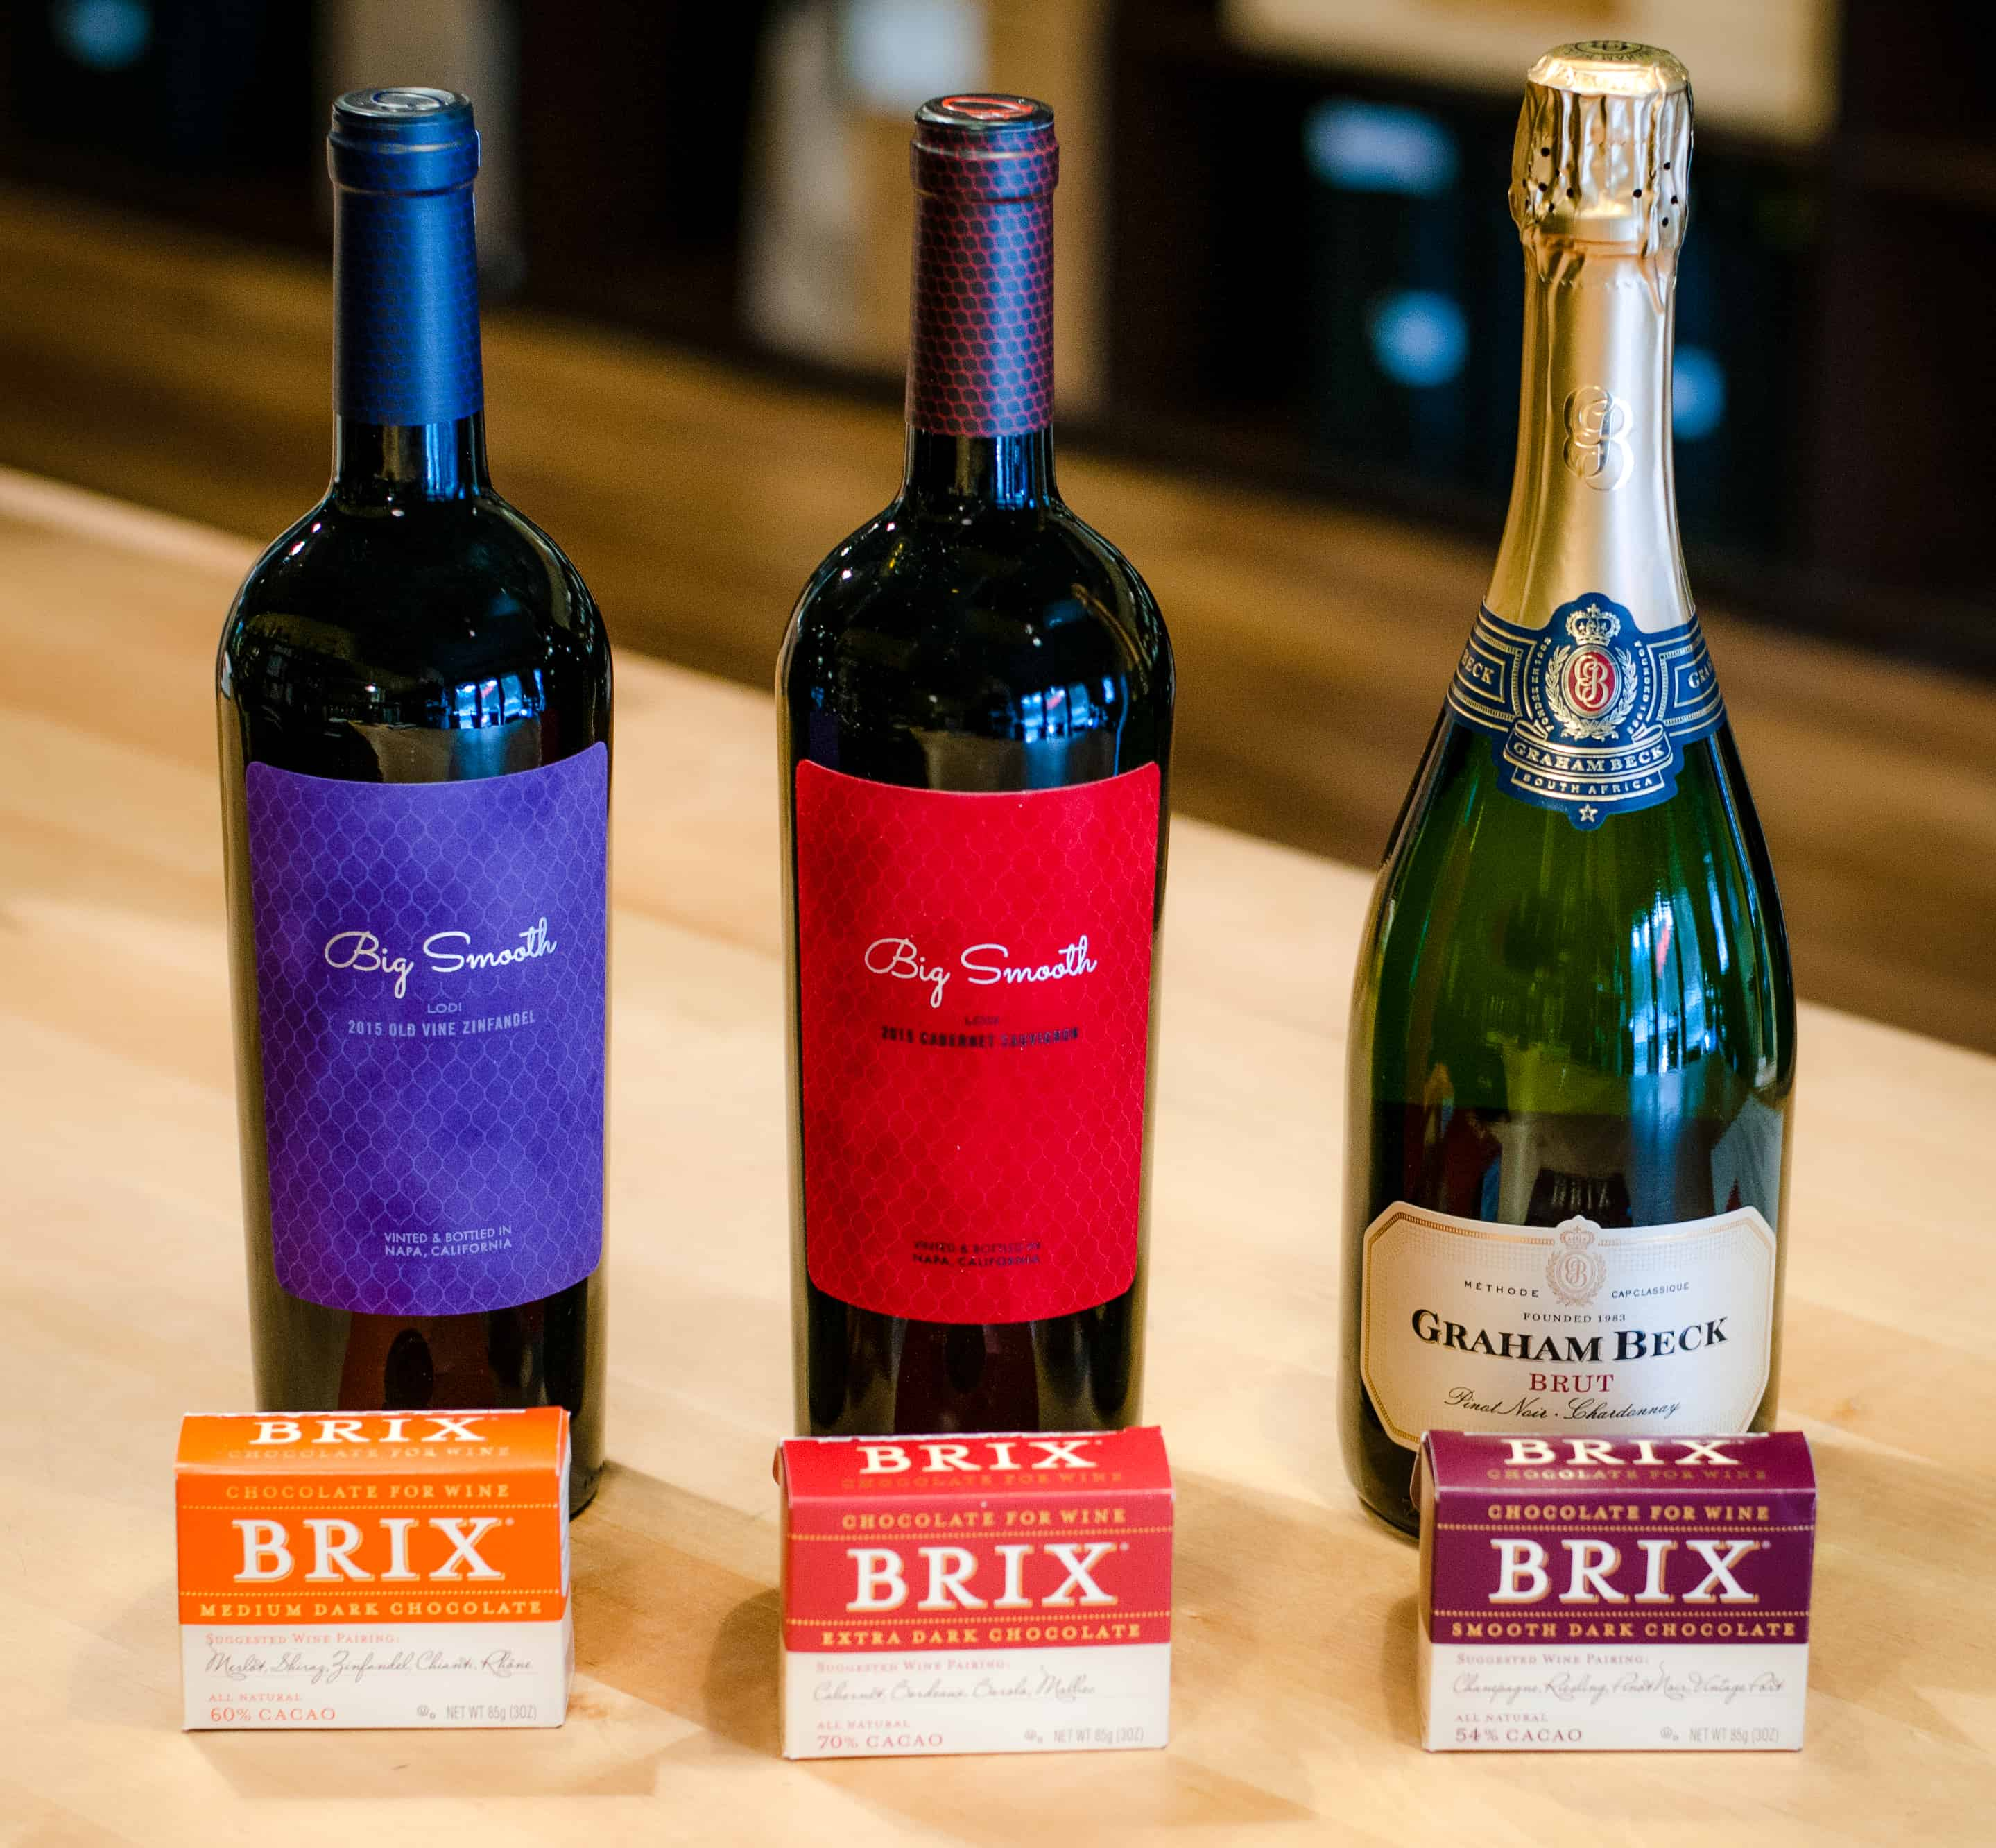 Bosu's Wine Shop Brix and wine pairing